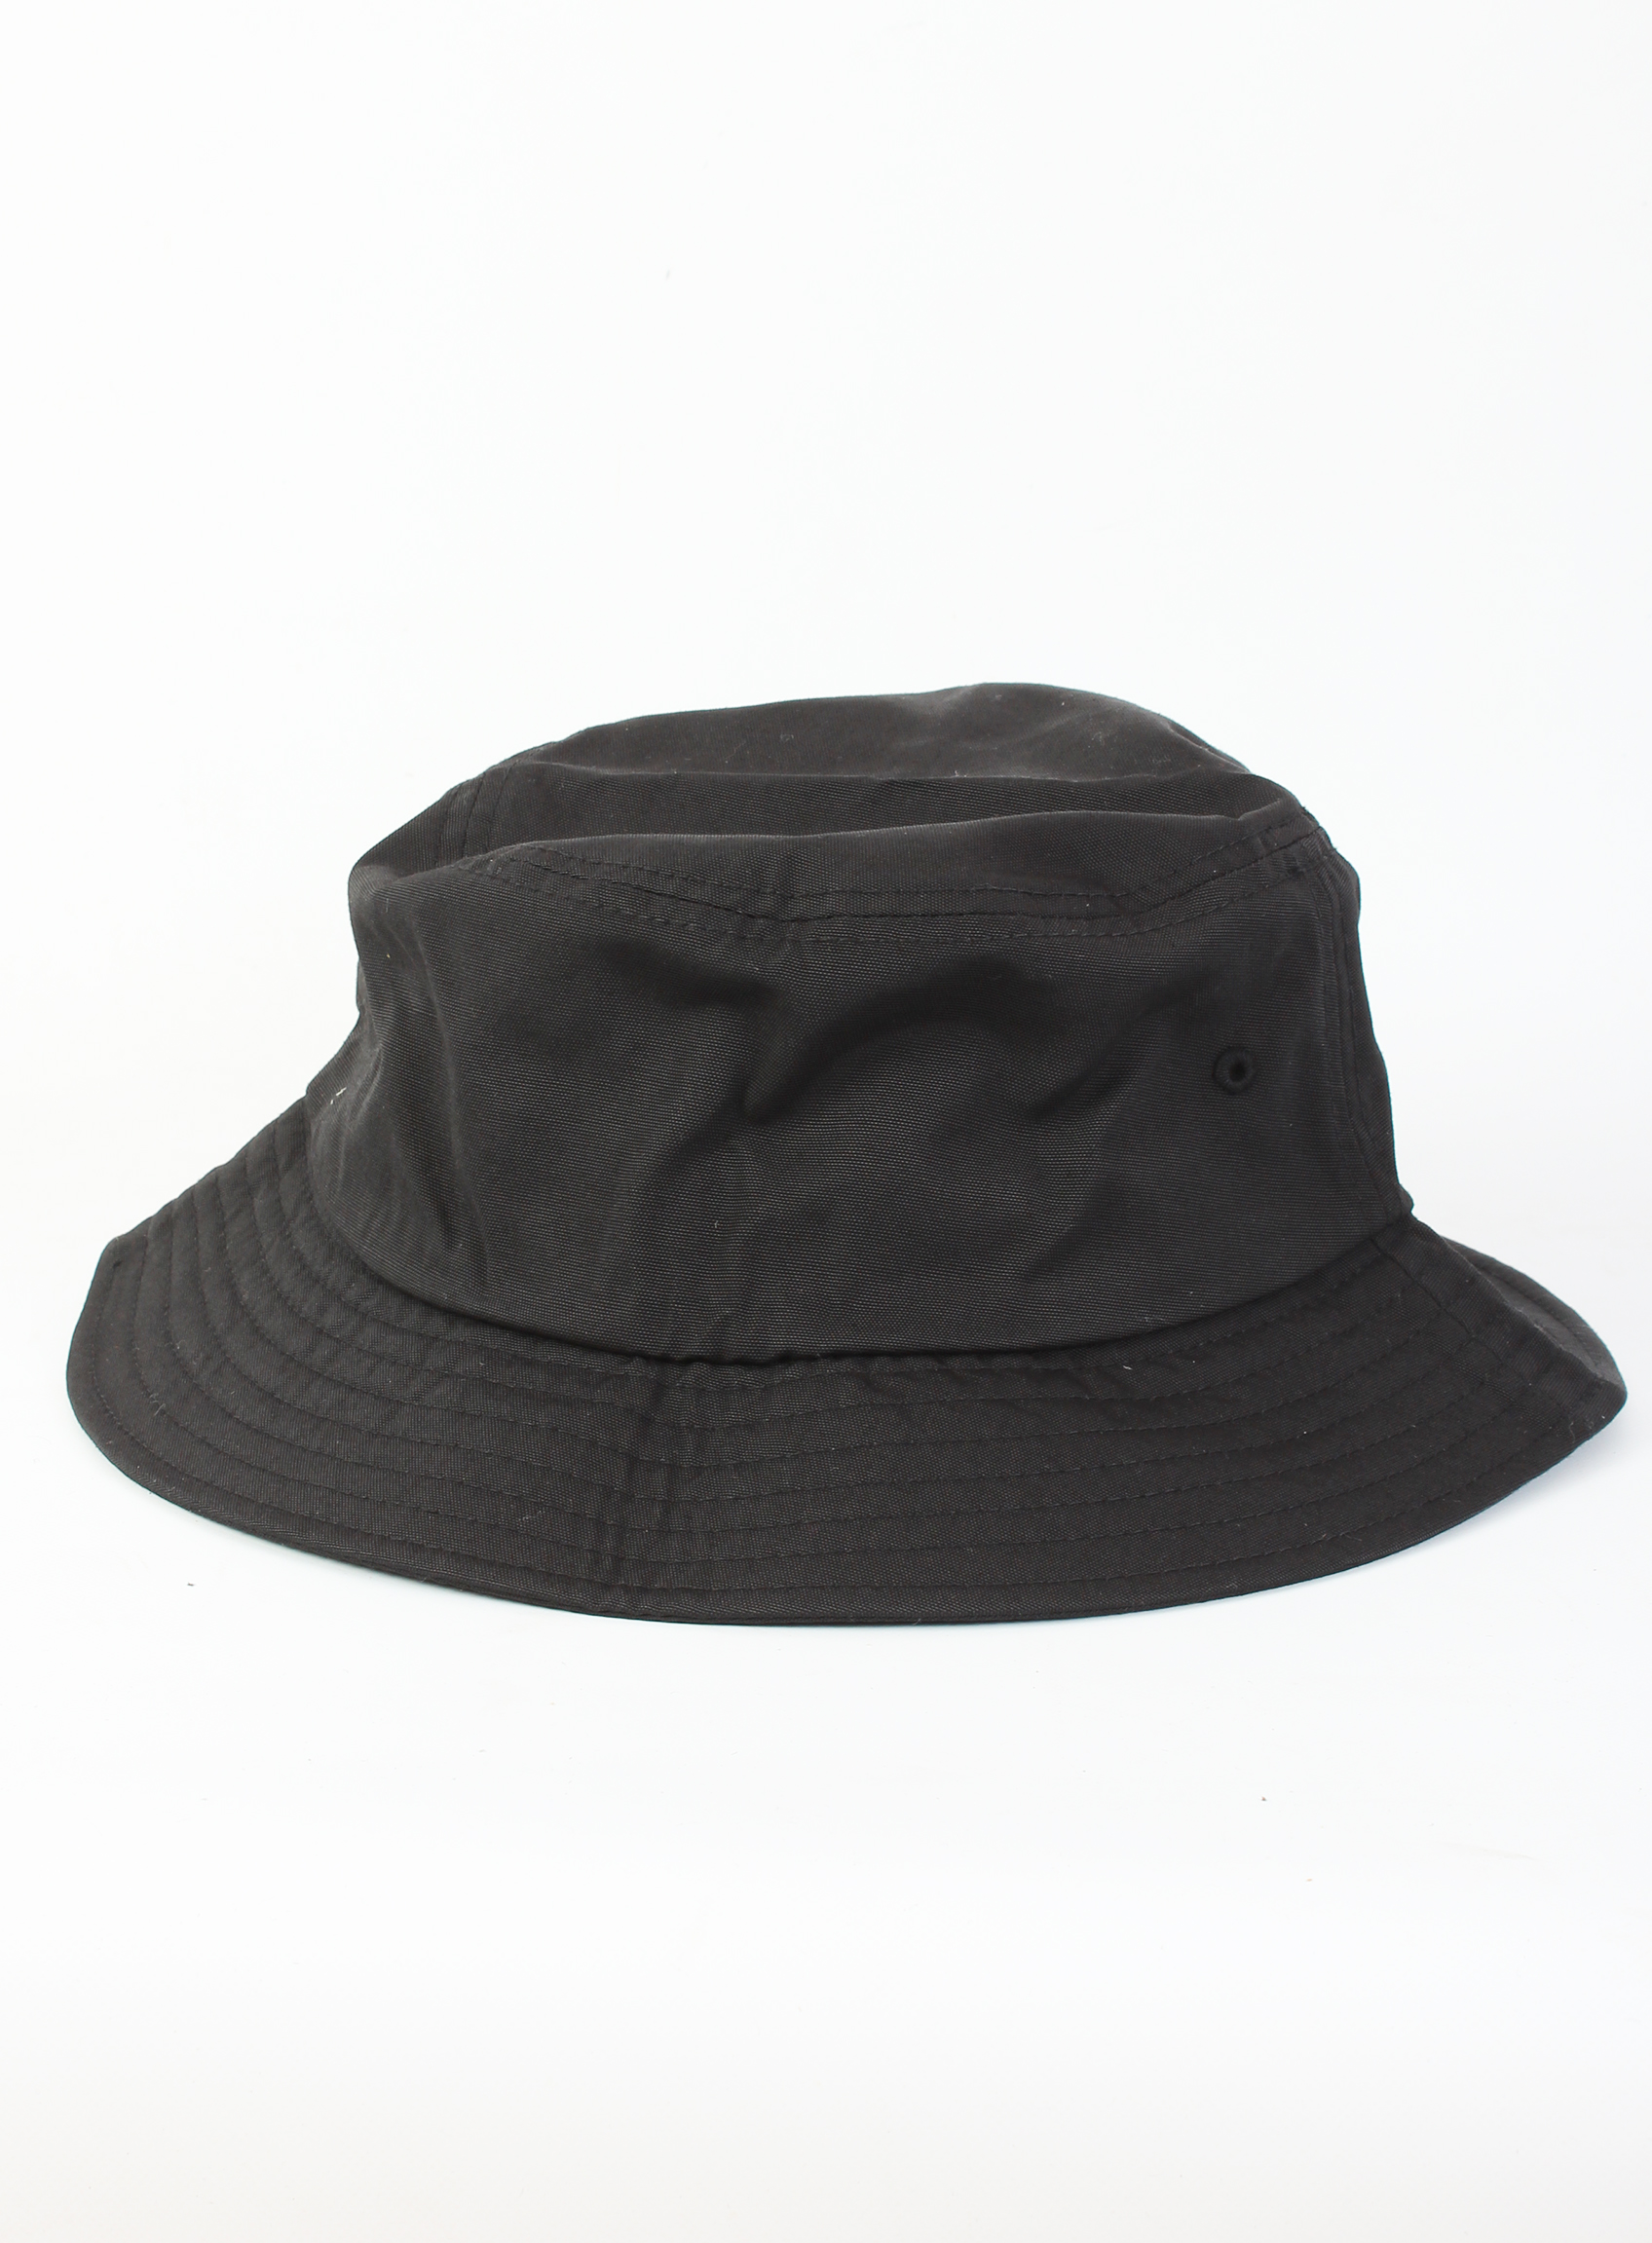 b644fdcb83d Diamond Supply Co Stone Cut Bucket Hat Black